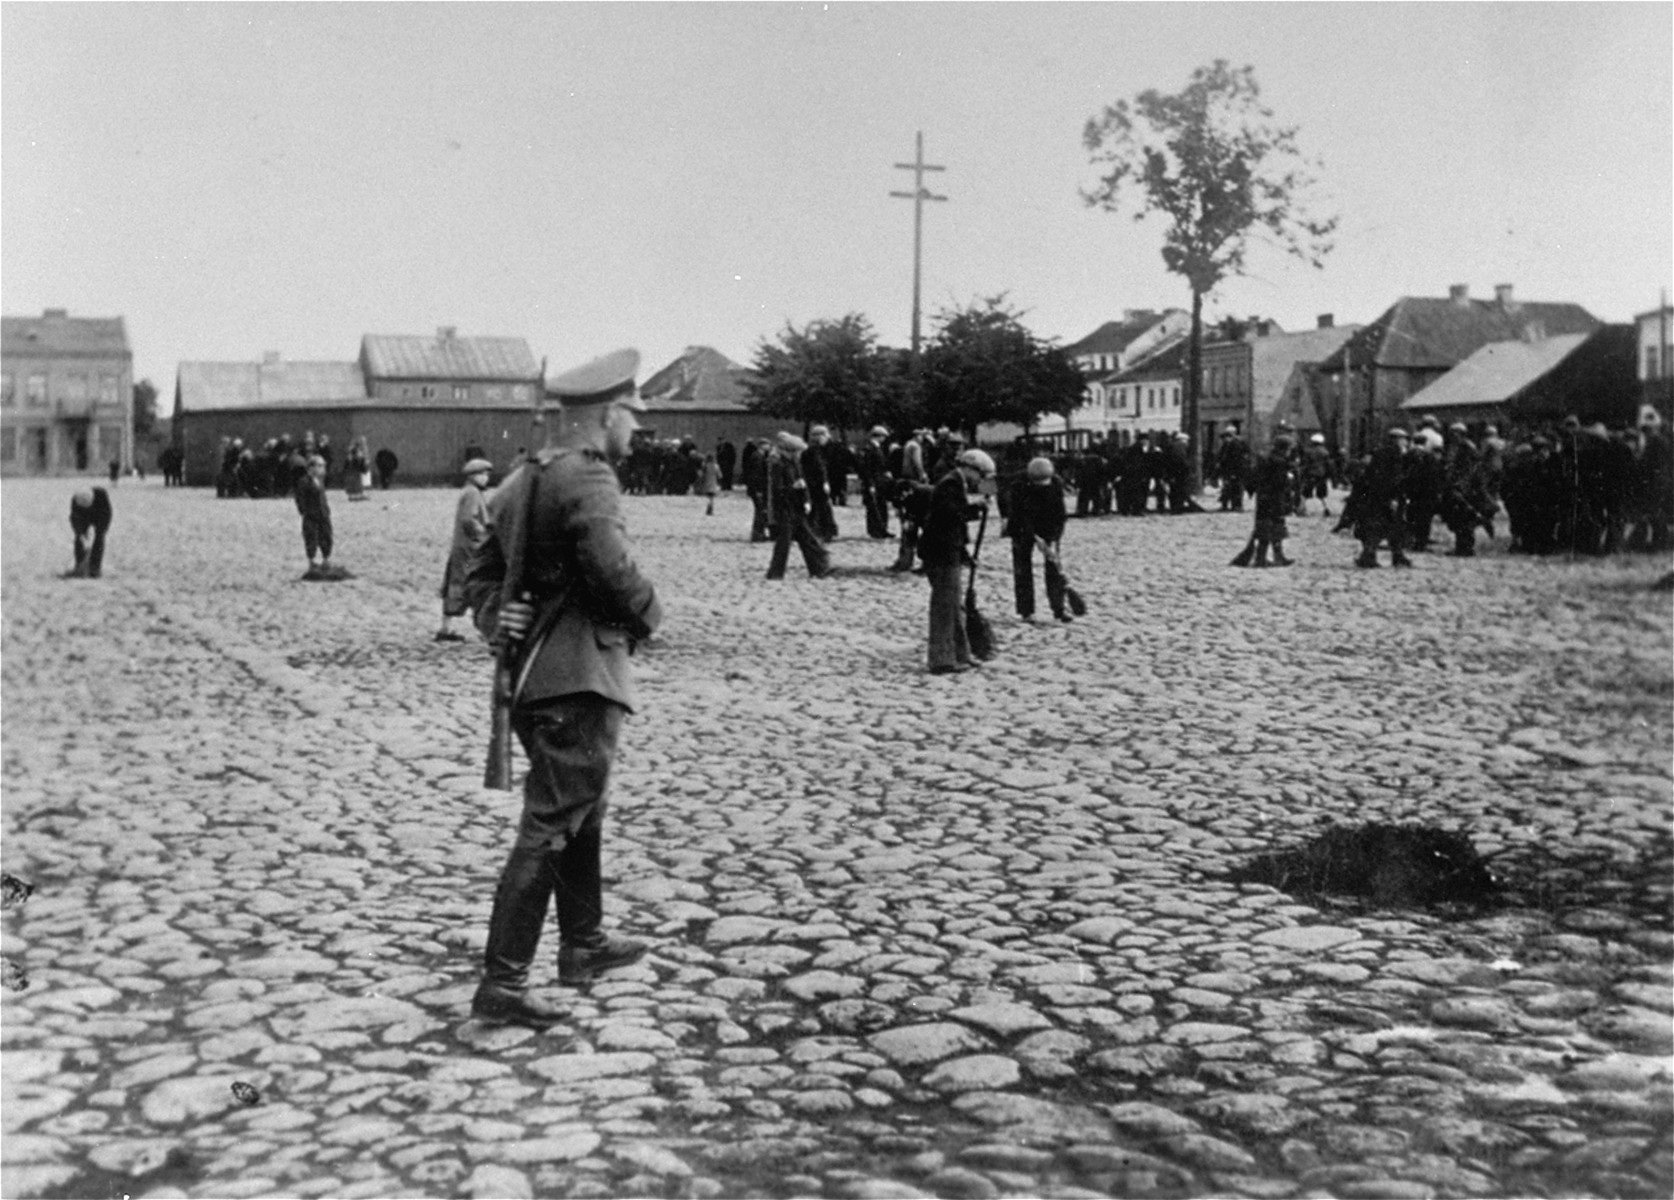 An SS member oversees a group of Jewish men at forced labor sweeping the pavement of the town square in Raciaz.